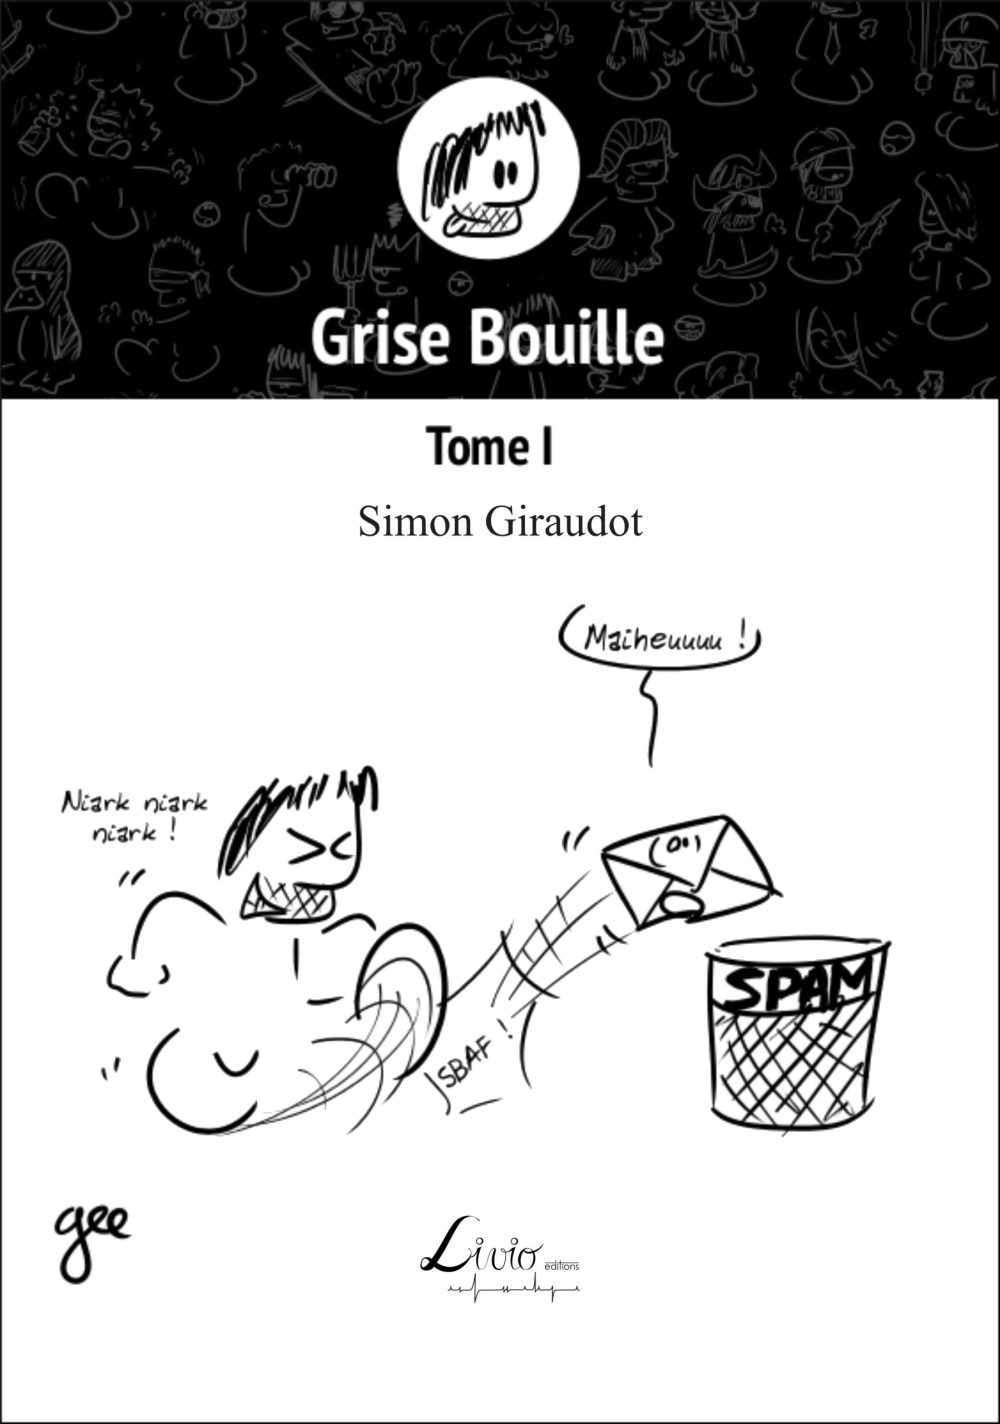 Grise Bouille – Tome I